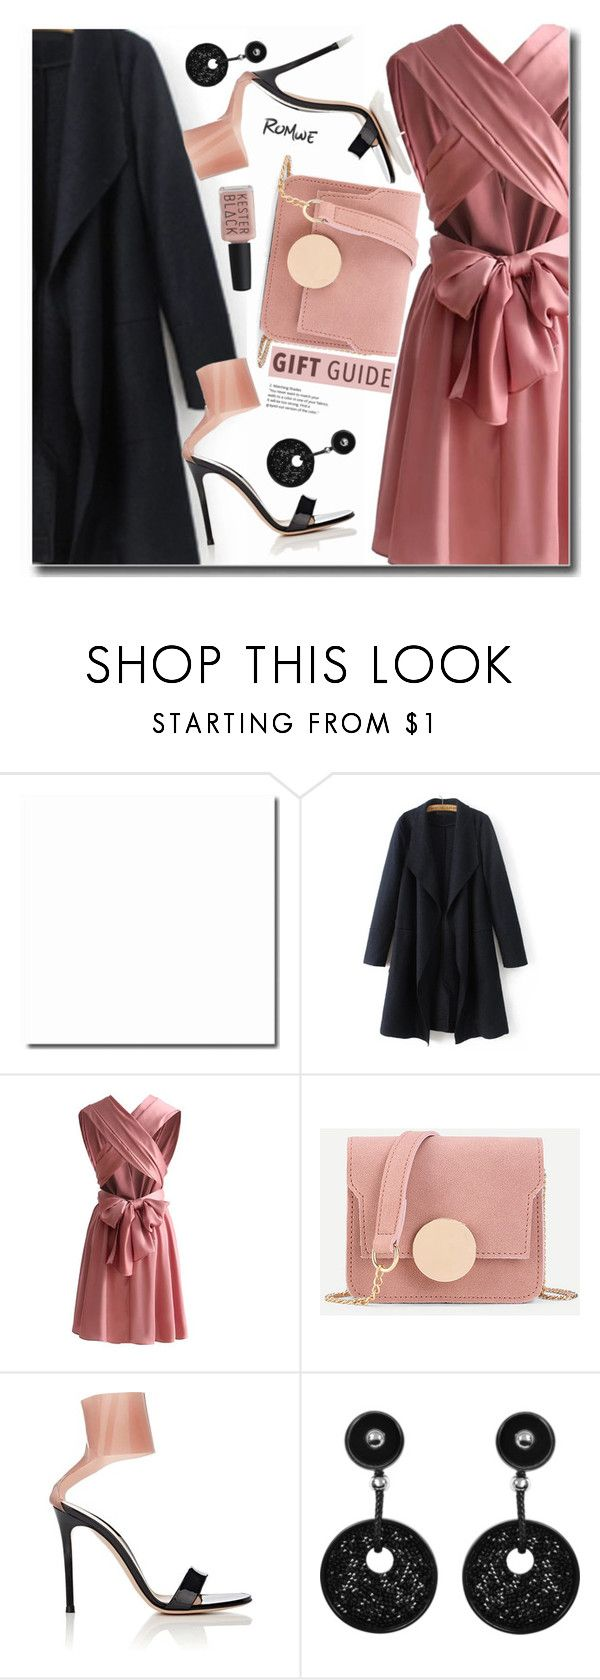 """""""Gift"""" by soks ❤ liked on Polyvore featuring Gianvito Rossi, Giorgio Armani, Kester Black, dress, polyvoreeditorial and CoffeeDate"""